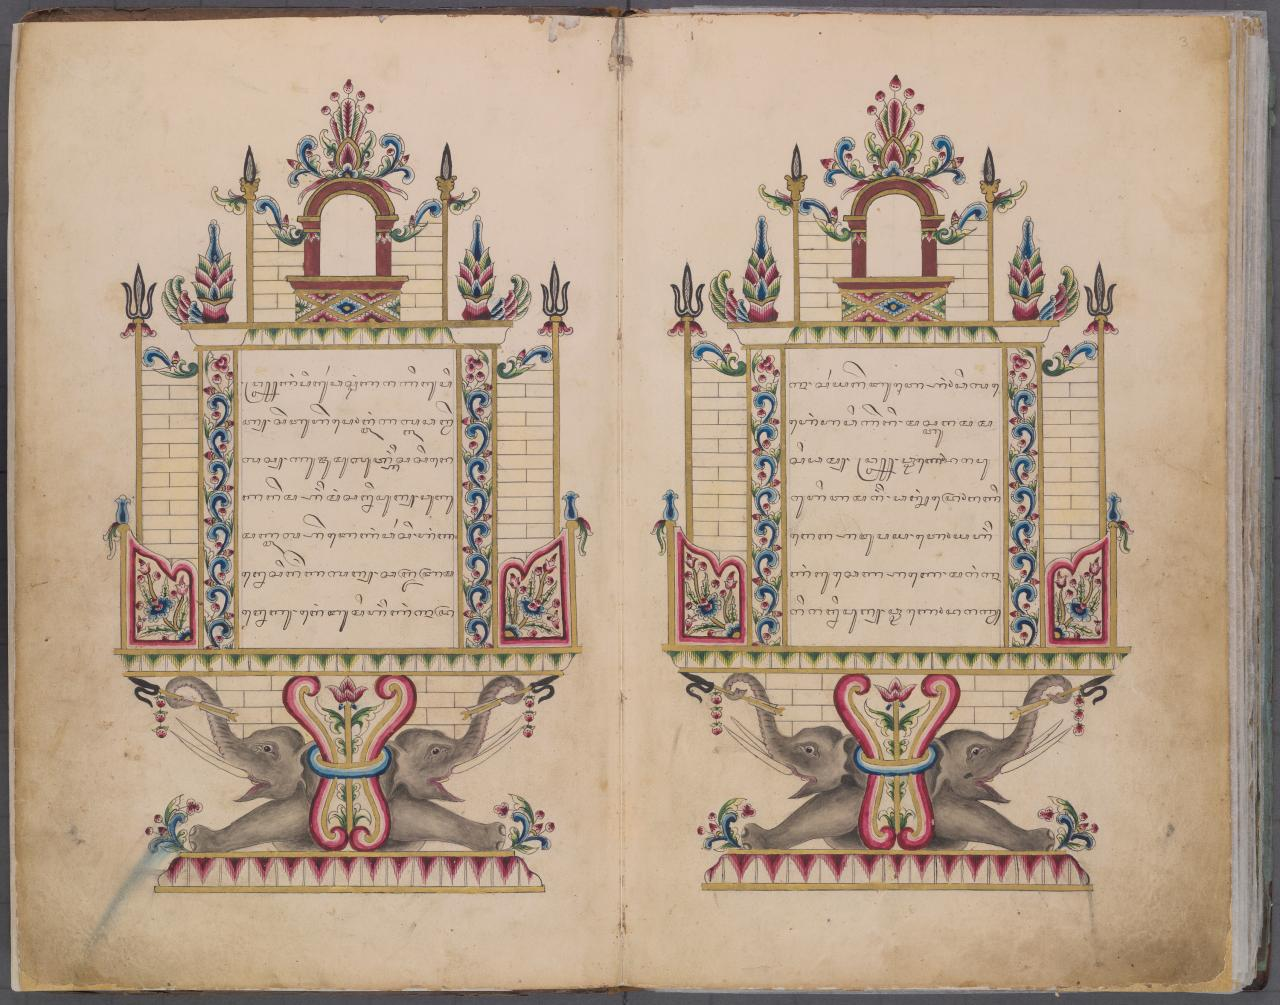 Illustrated manuscript of Serat Dewa Ruci